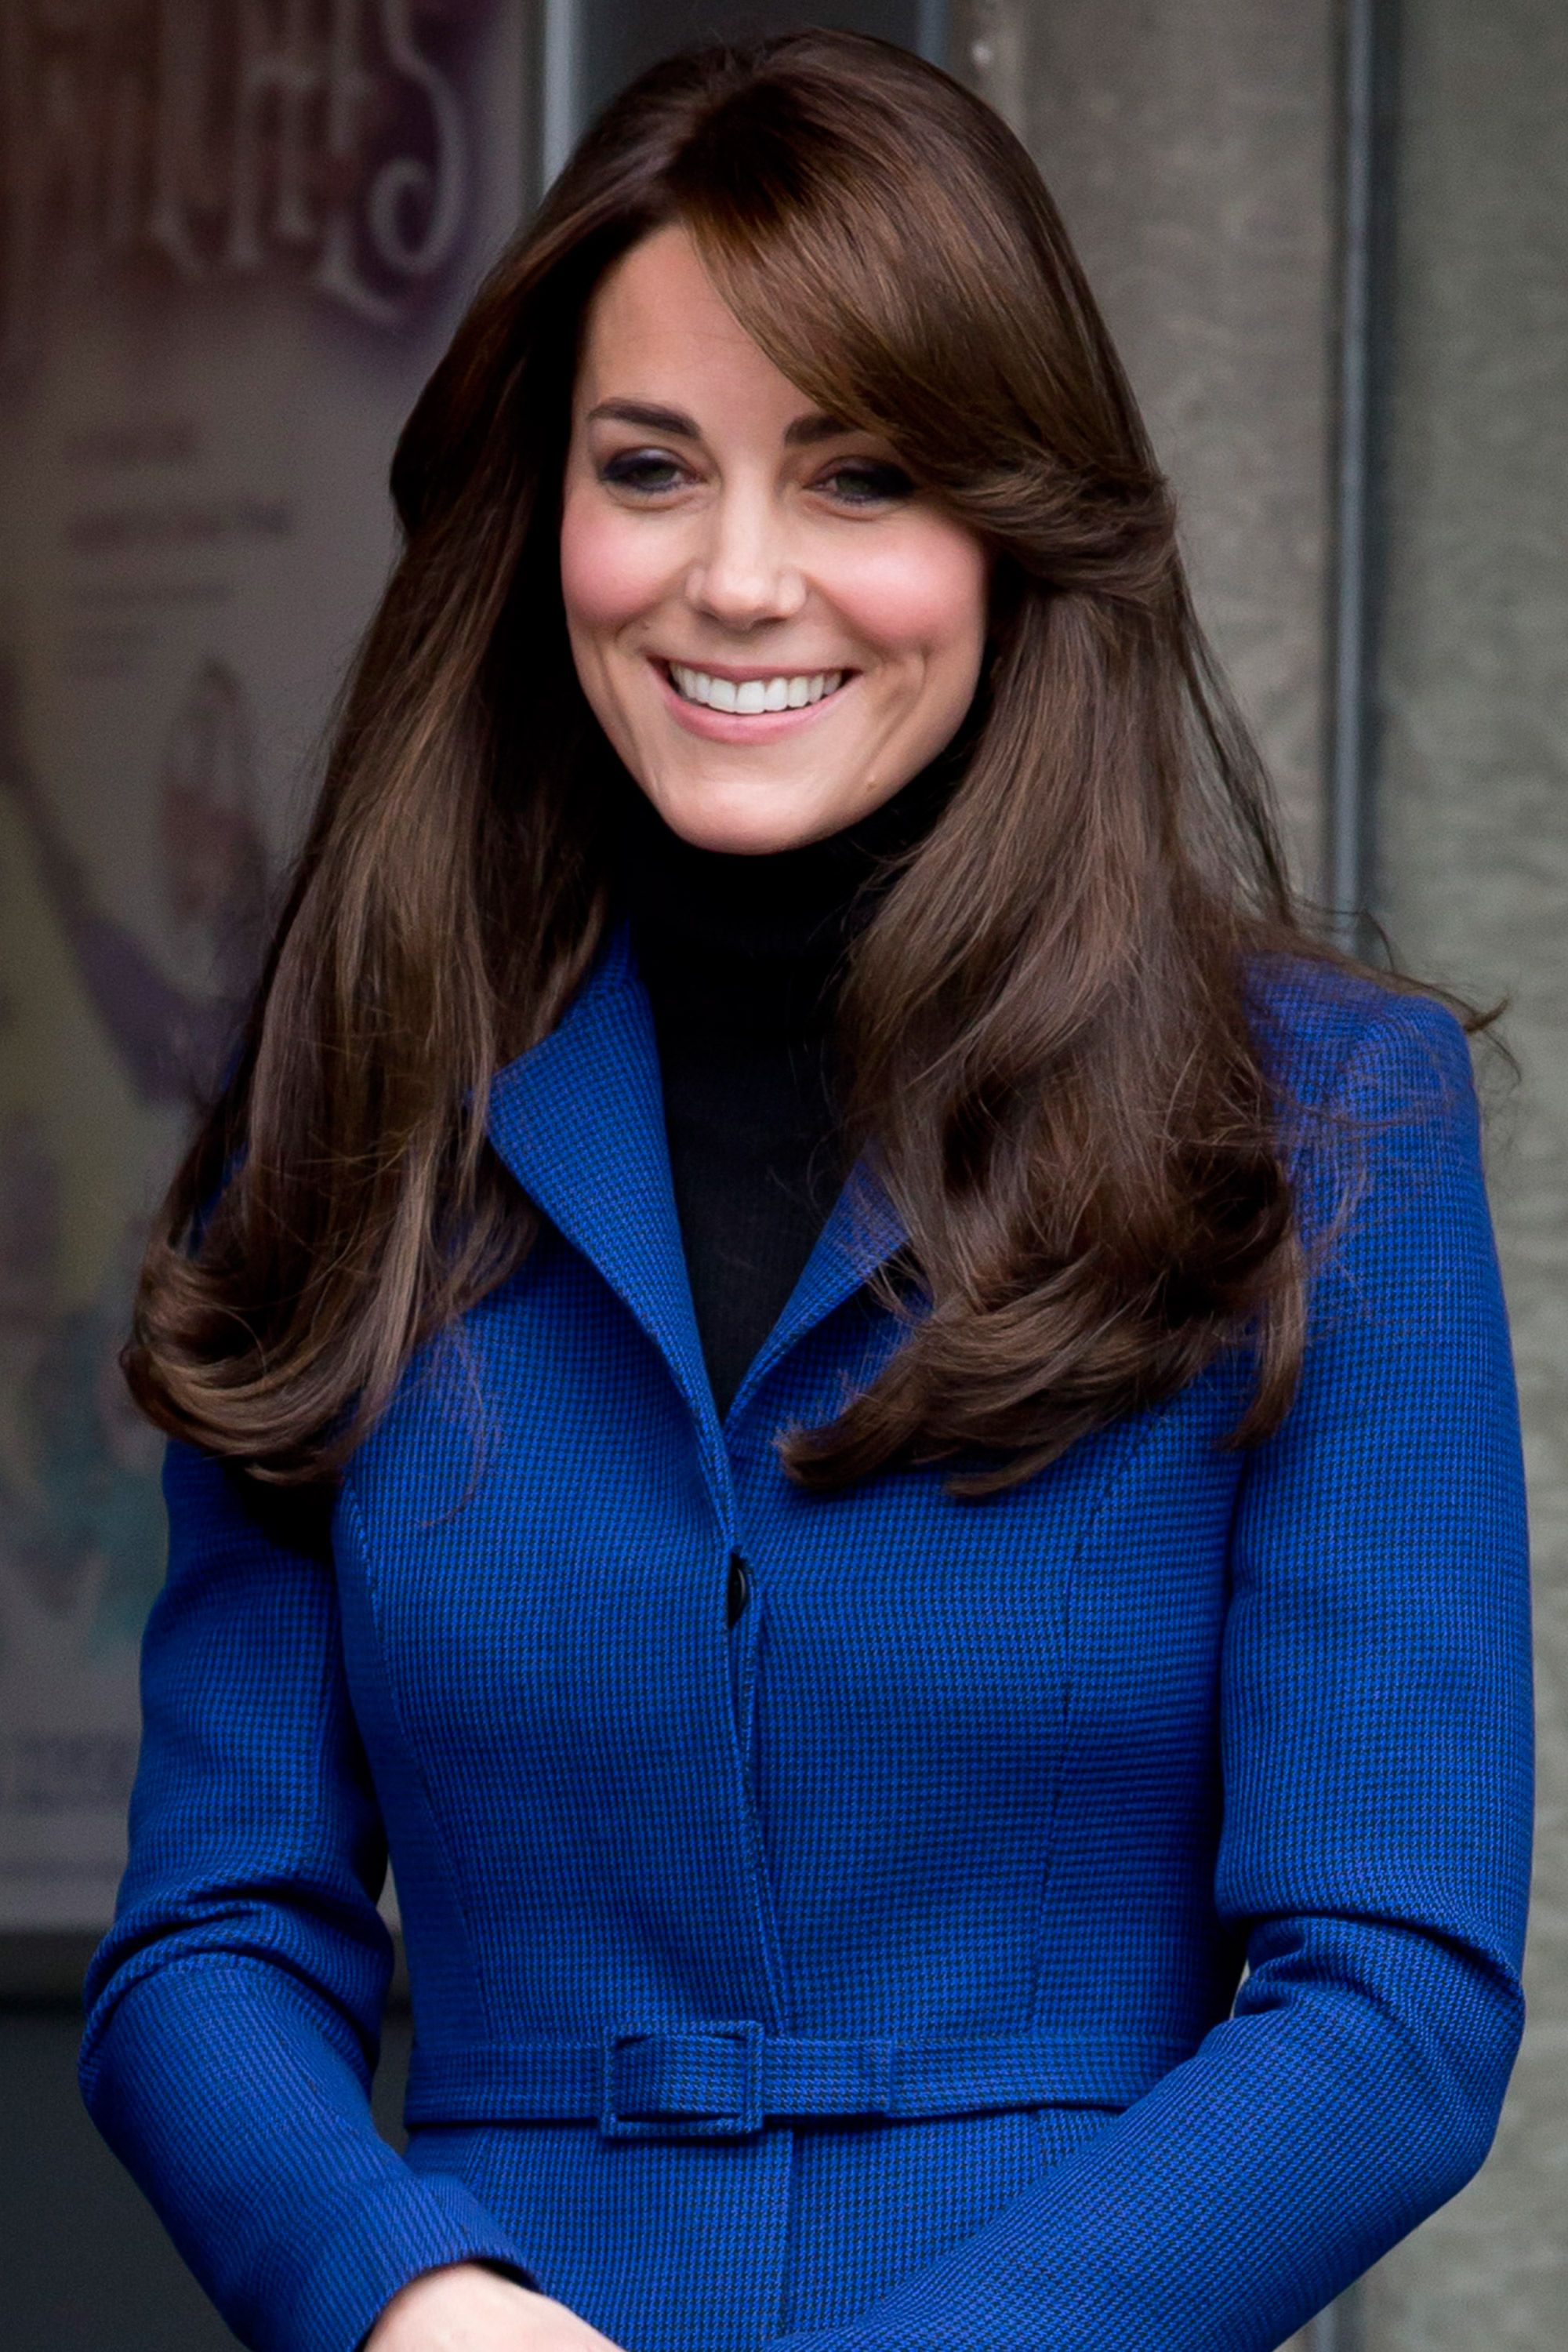 duchess of cambridge kate middleton beauty transformation looks duchess of cambridge kate middleton